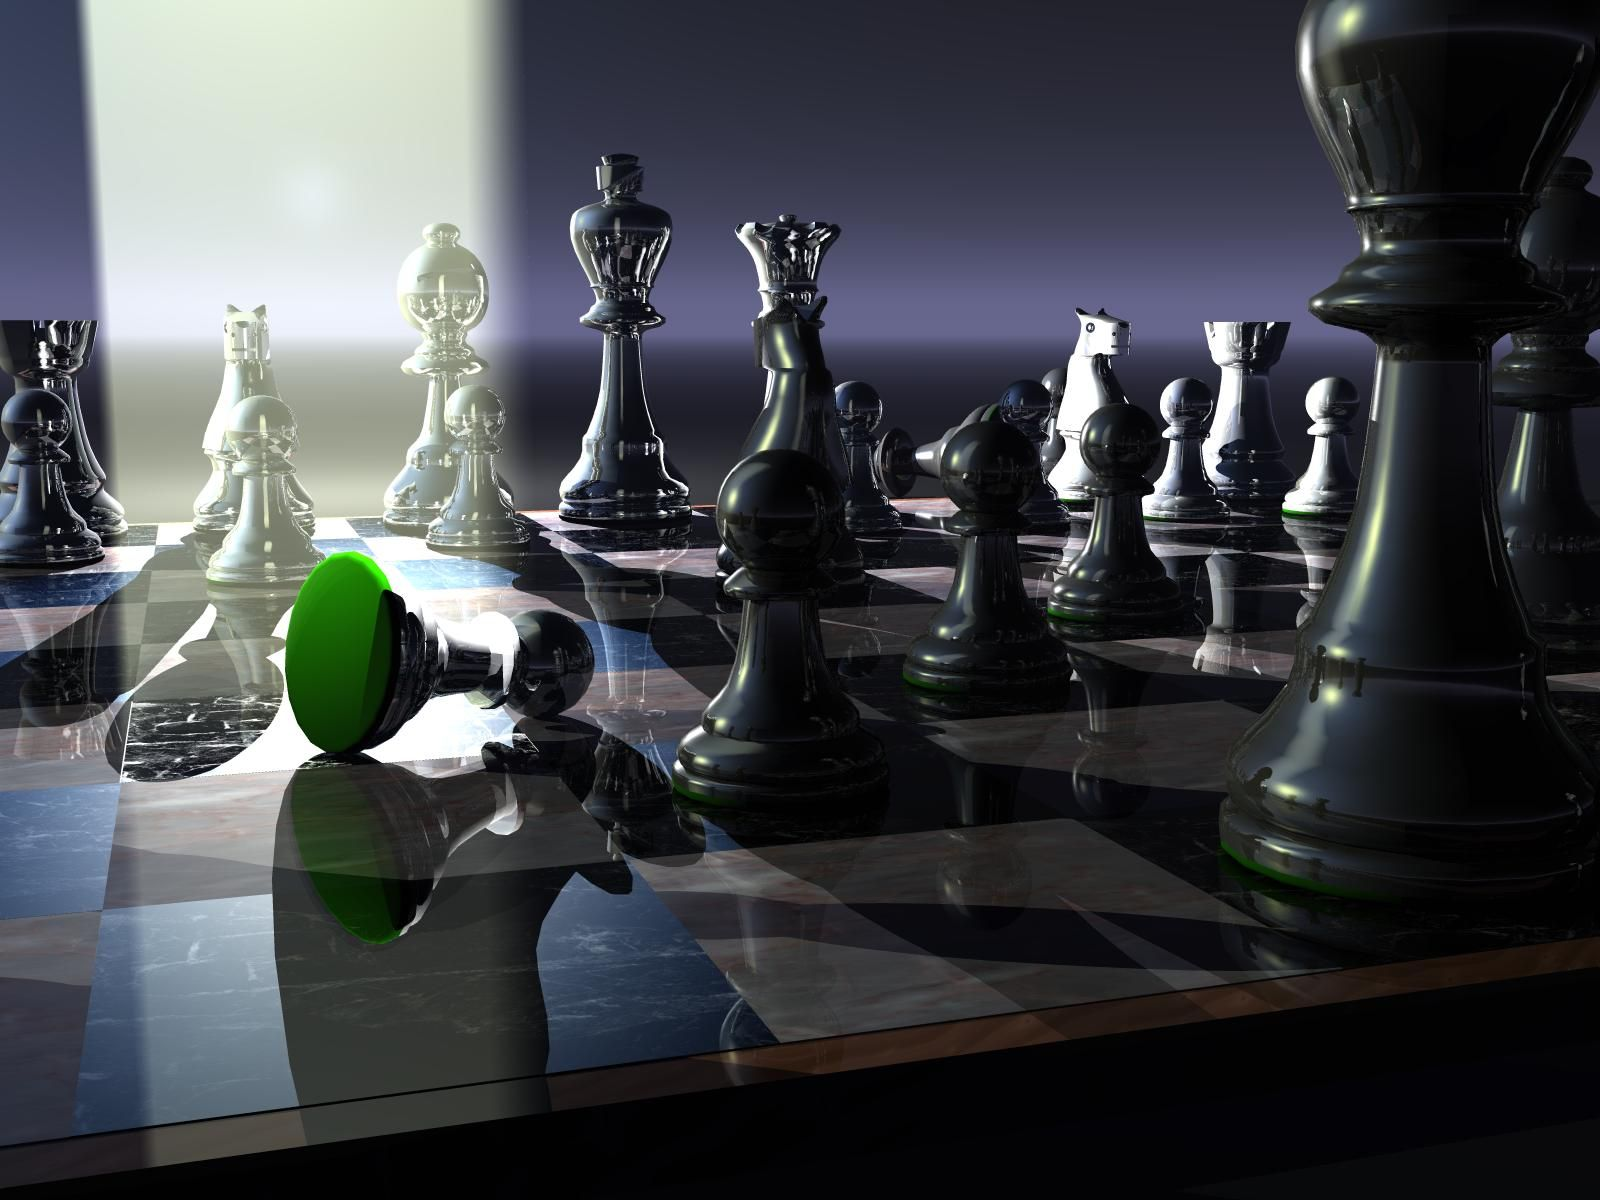 3d Wallpaper For Computer Wallpaper For Pc Desktop And Handphone Chess Game Chess Board 3d Chess